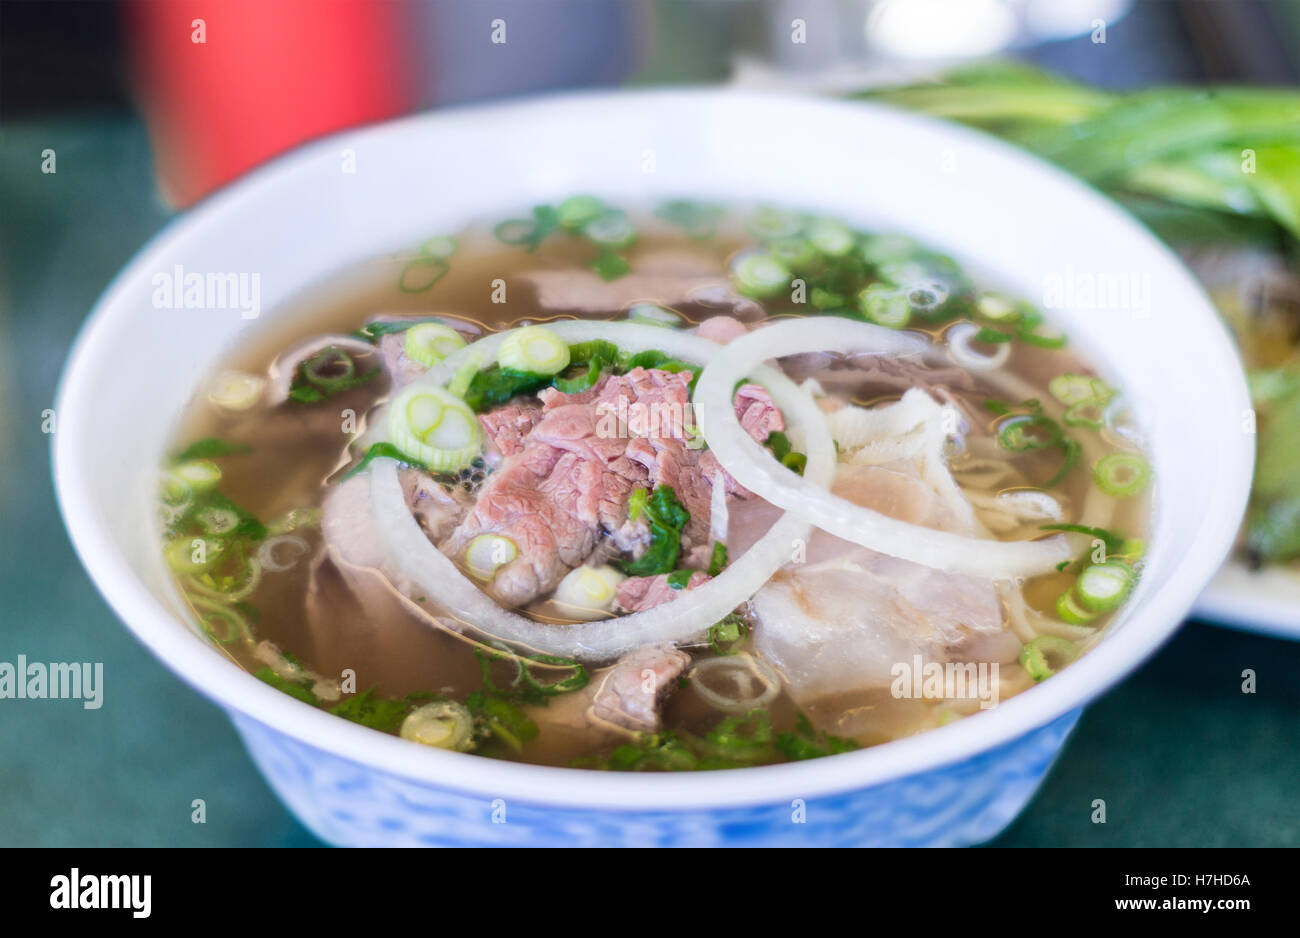 Bowl Of Vietnamese Pho Noodle Soup With Rare Beef Tendon Tripe And Stock Photo Alamy